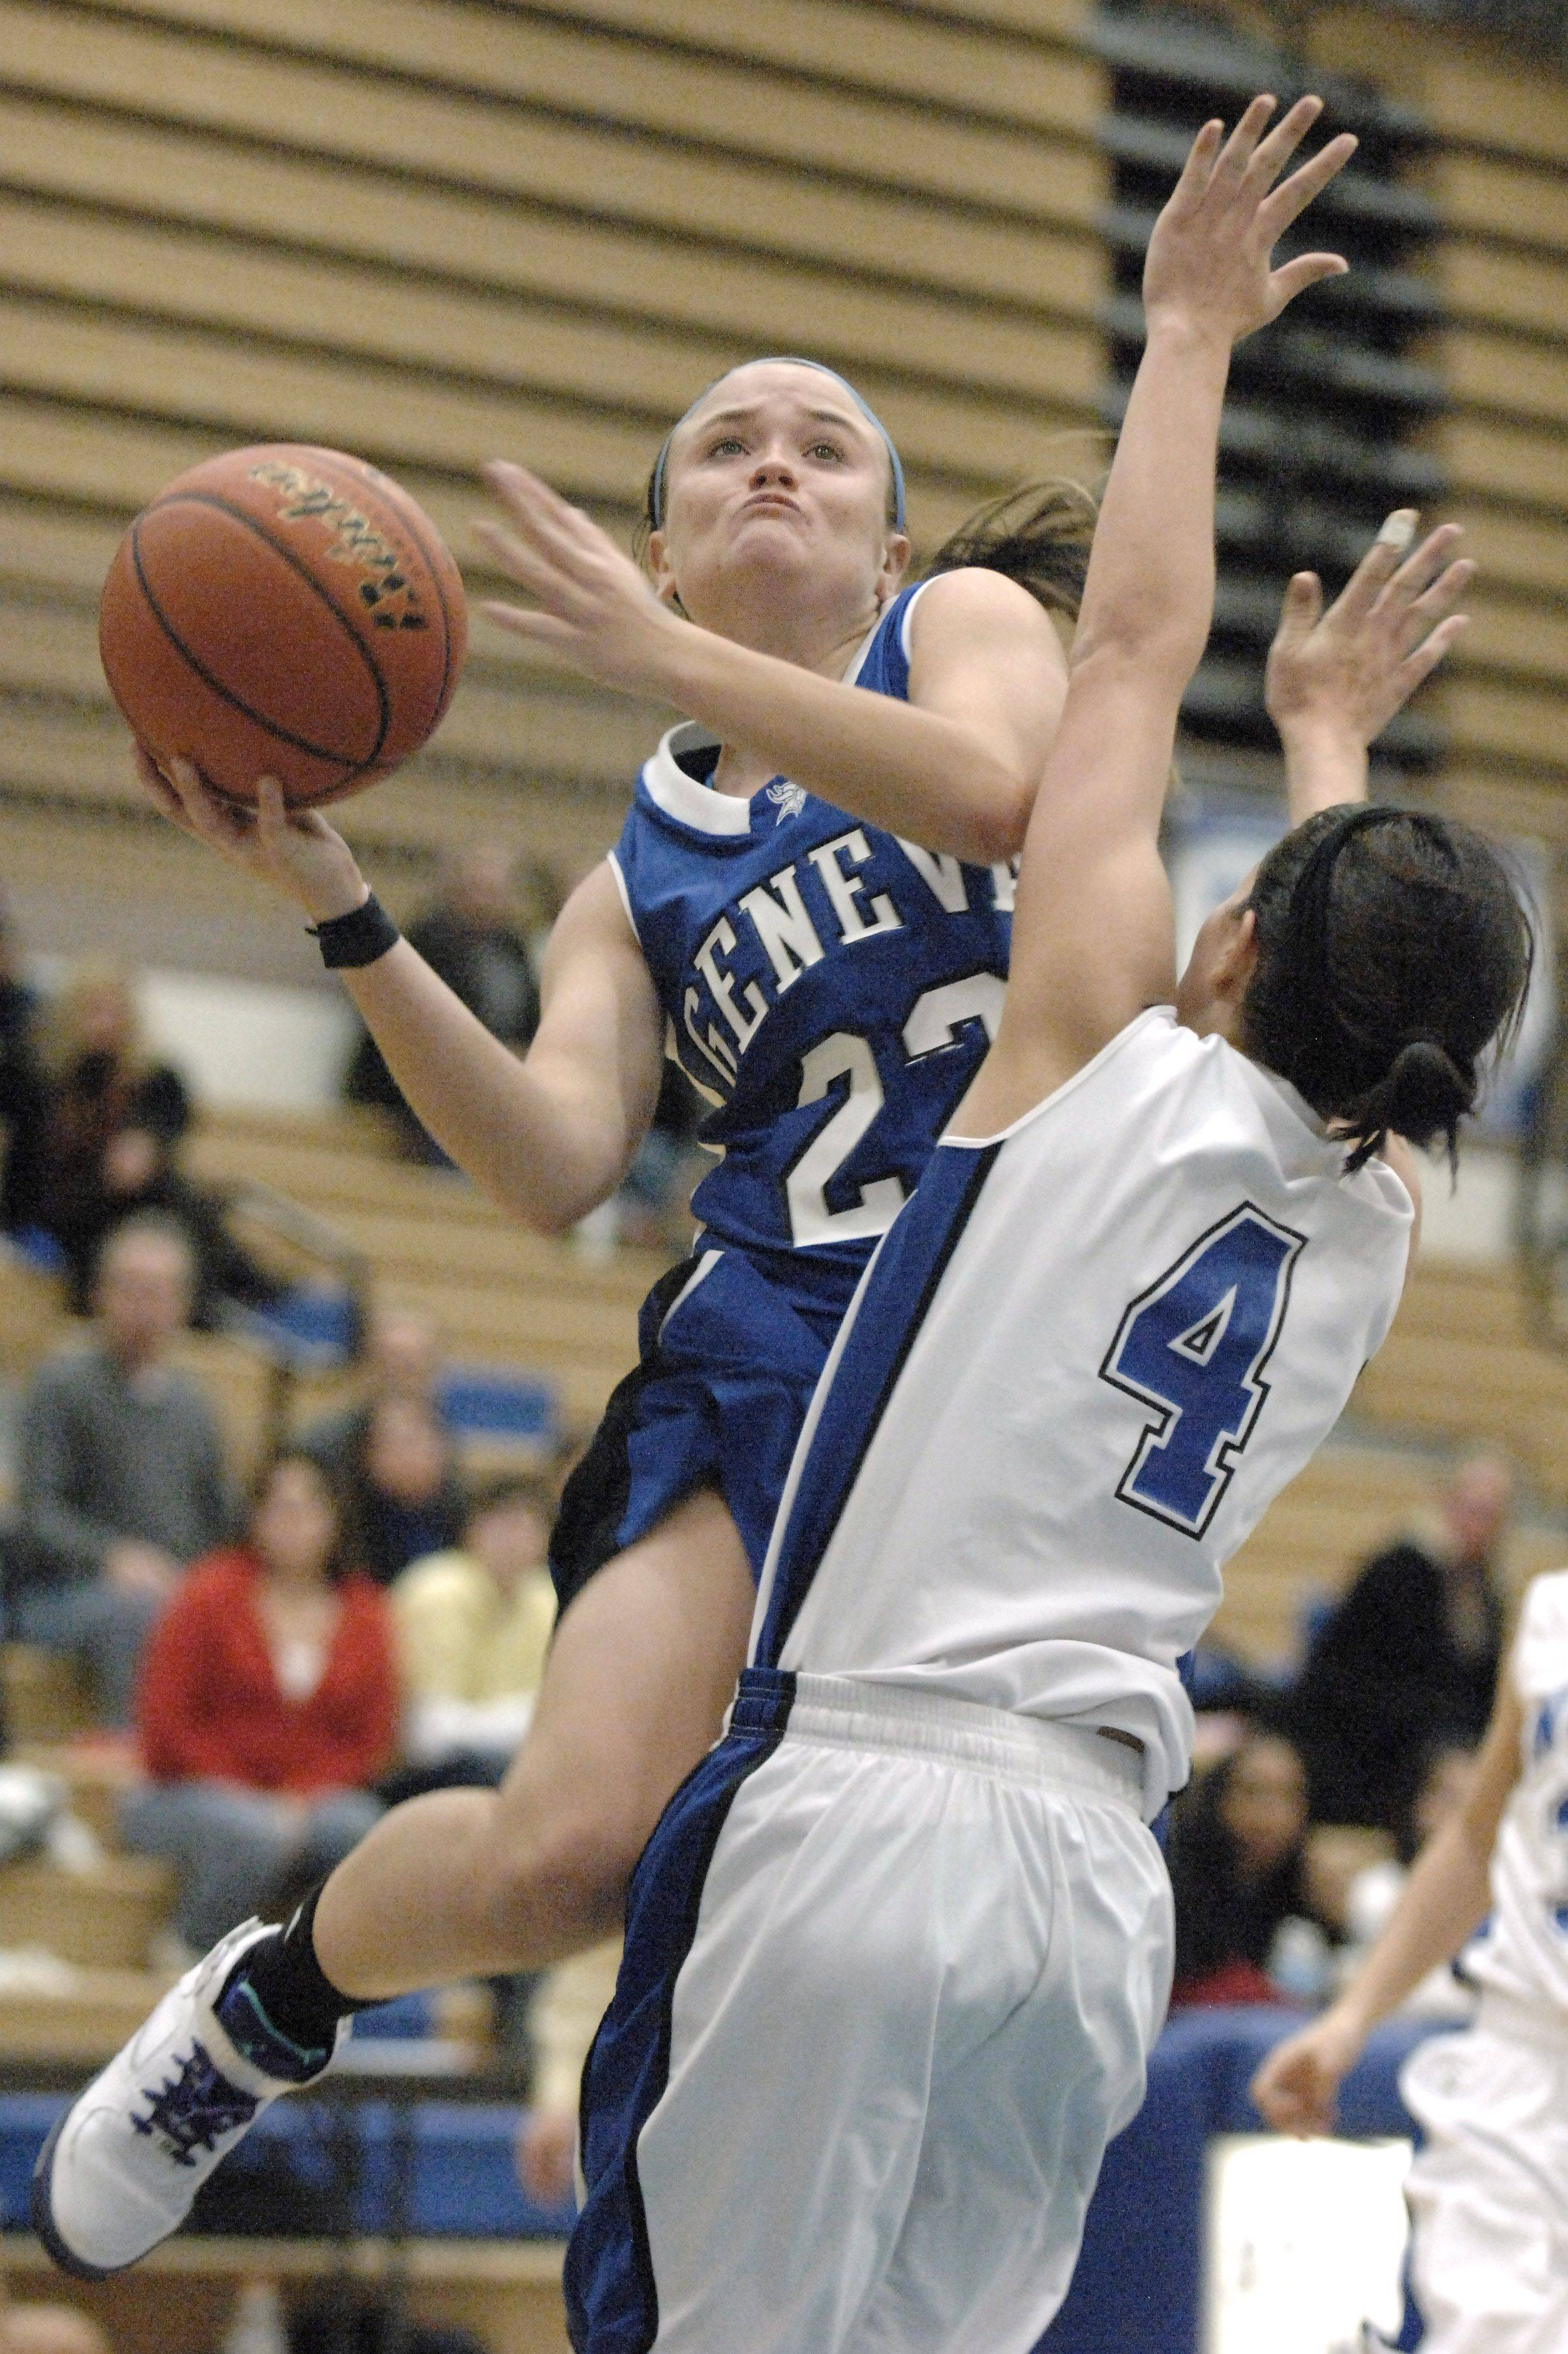 Geneva guard Sammy Scofield goes up for the shot over St. Charles North's Sydney Russell.